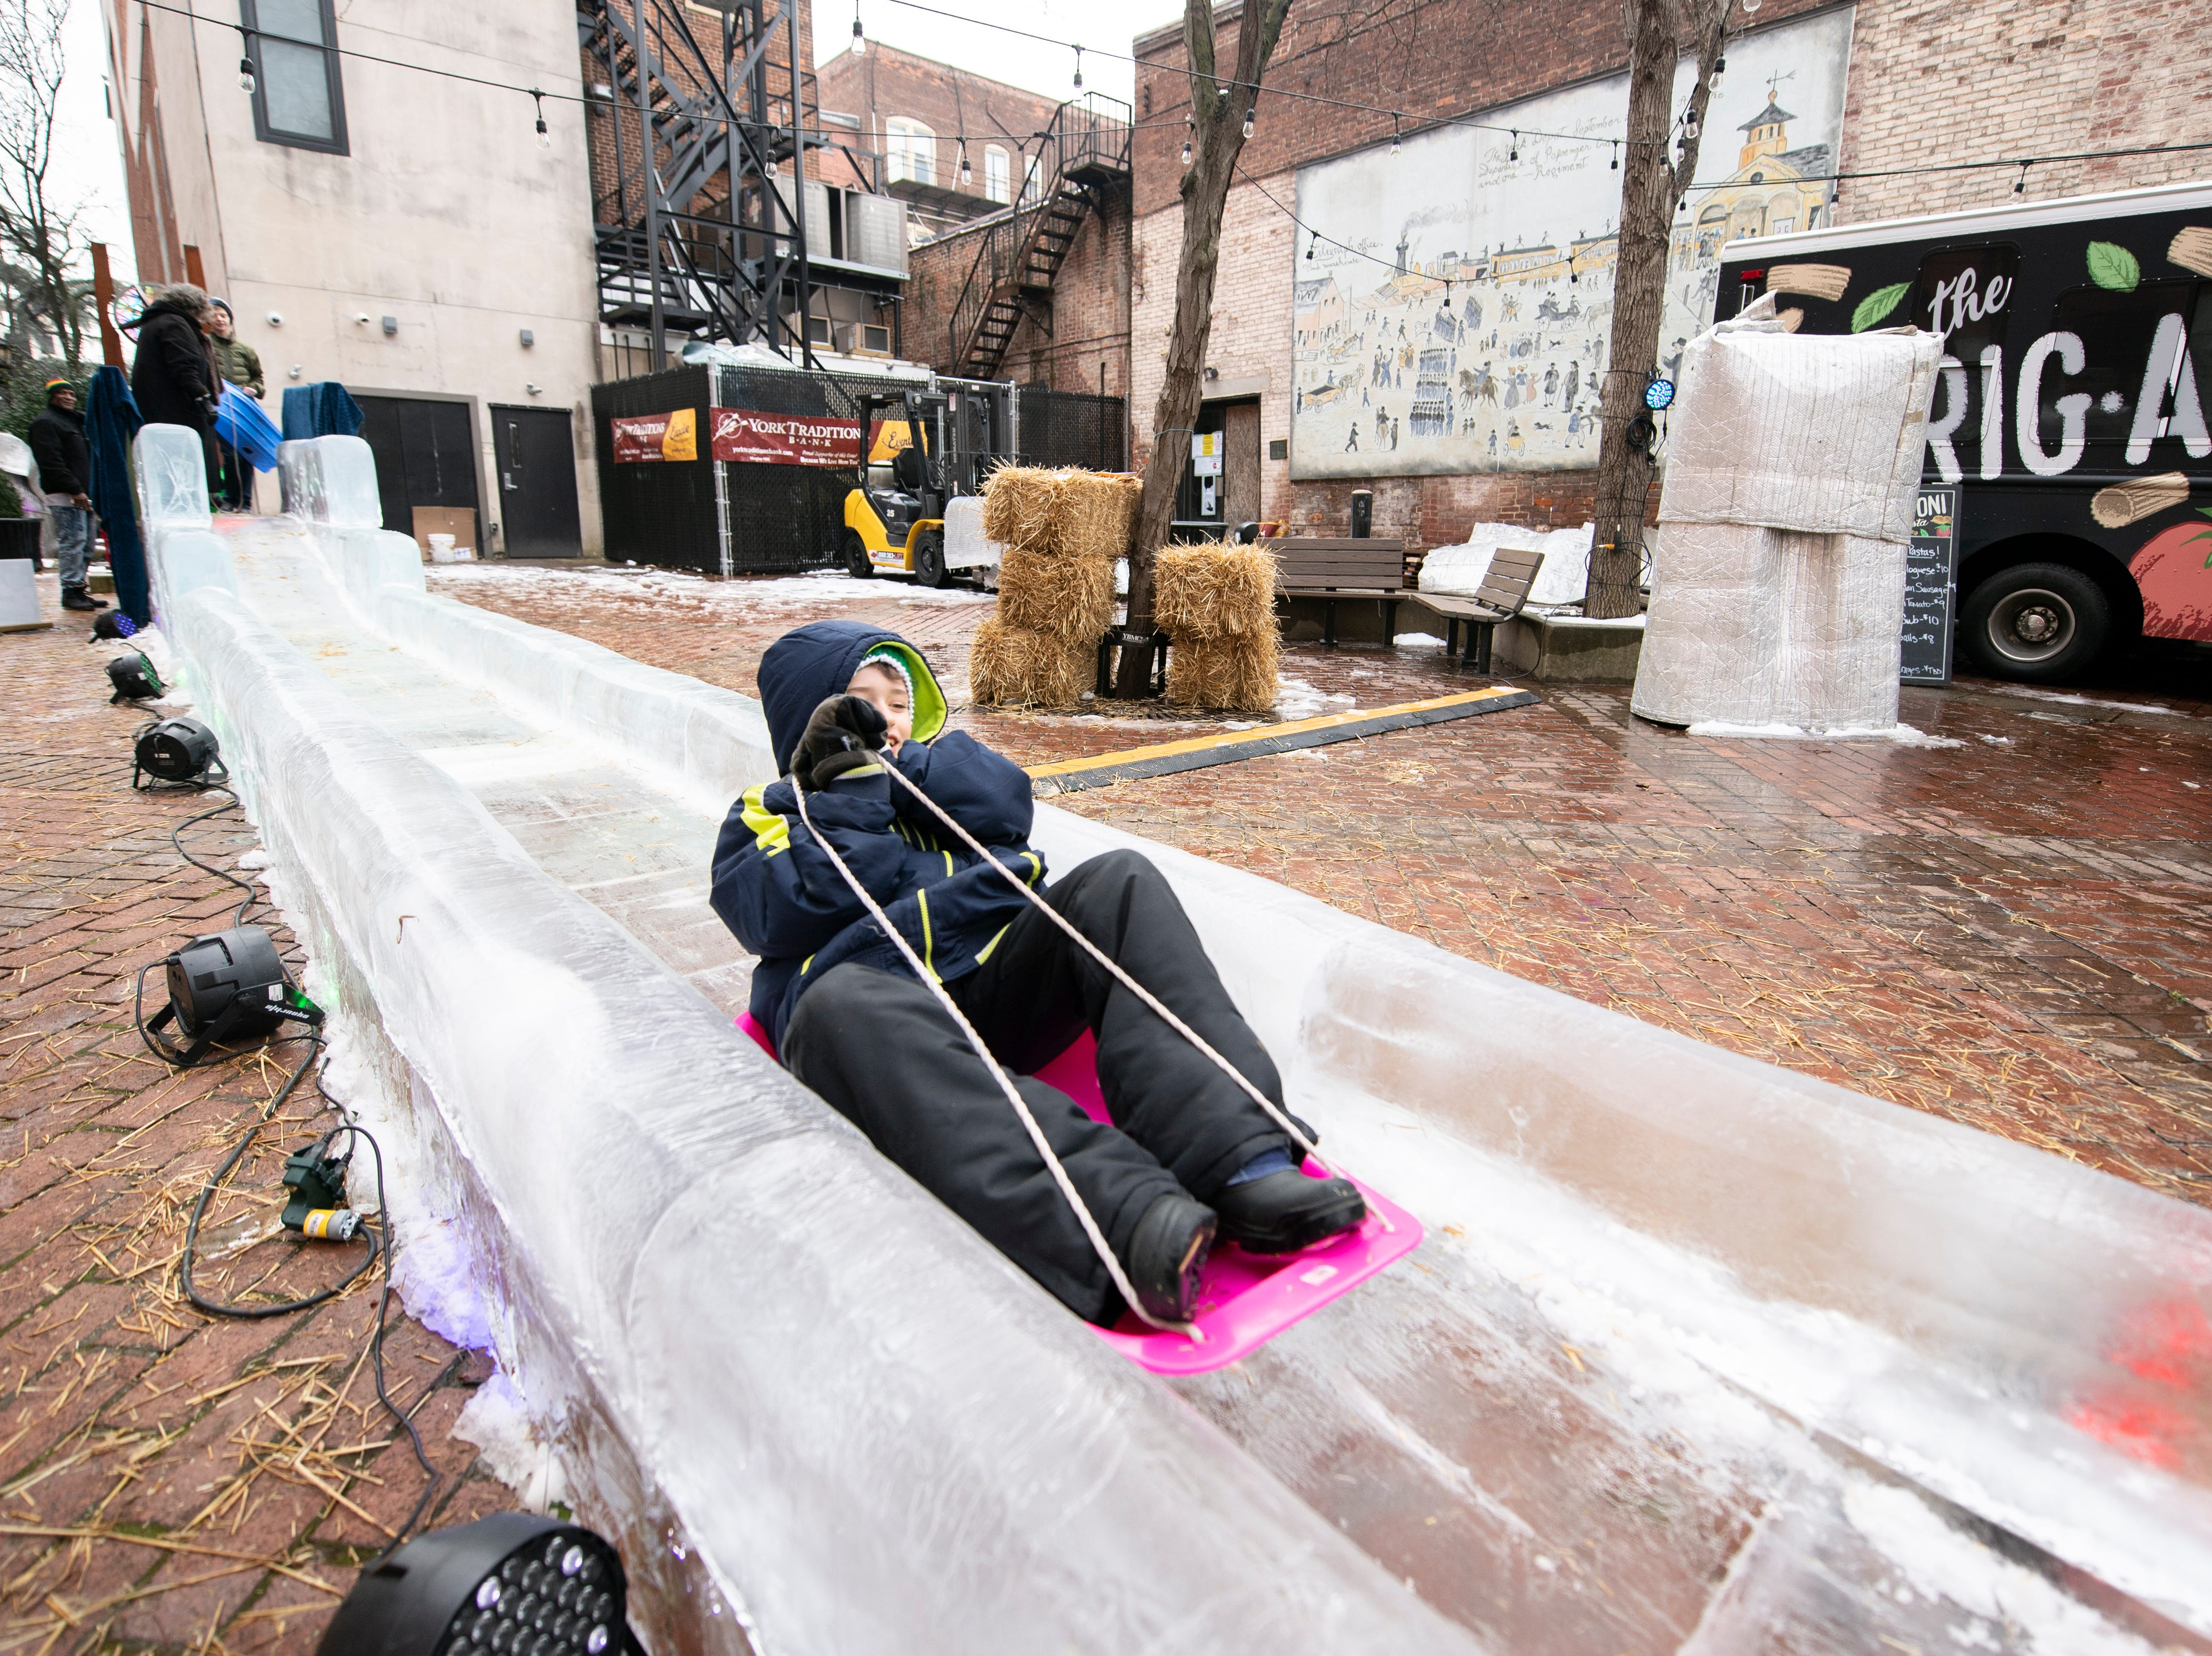 Brayden Arnold, 8, of East York, rides a sled down the 40-foot ice slide in Cherry Lane, downtown, Friday, Jan. 18, 2019. The FestivICE ice festival has interactive ice sculptures, an ice slide and more. The three-day event ends Saturday.